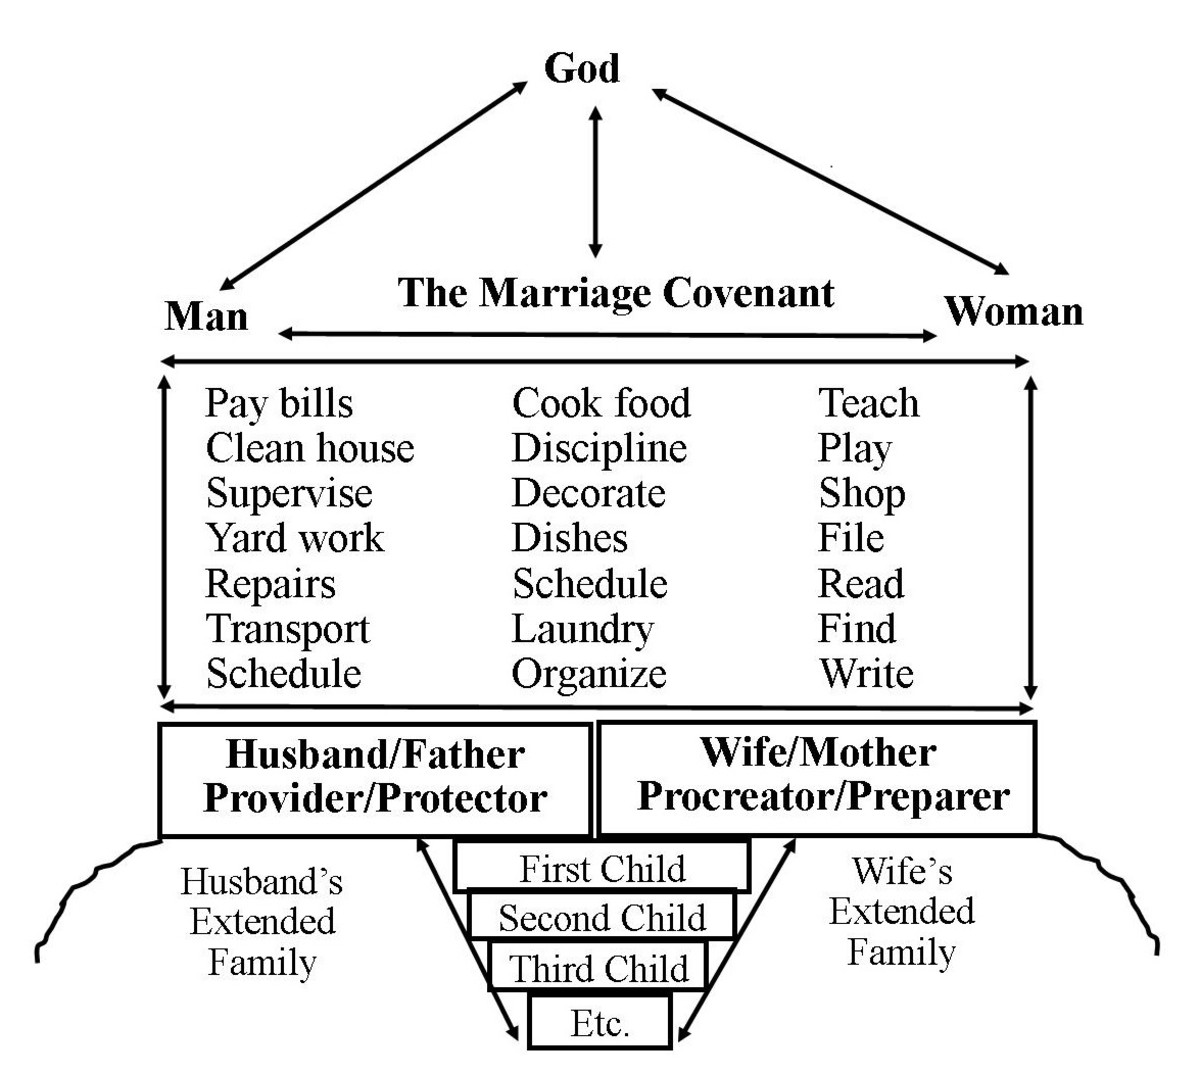 The Family of the Future Model shows how the primary roles of husband and wife in the marriage provide stability and strength, while secondary roles and responsibilities can be interchanged amongst various family members.